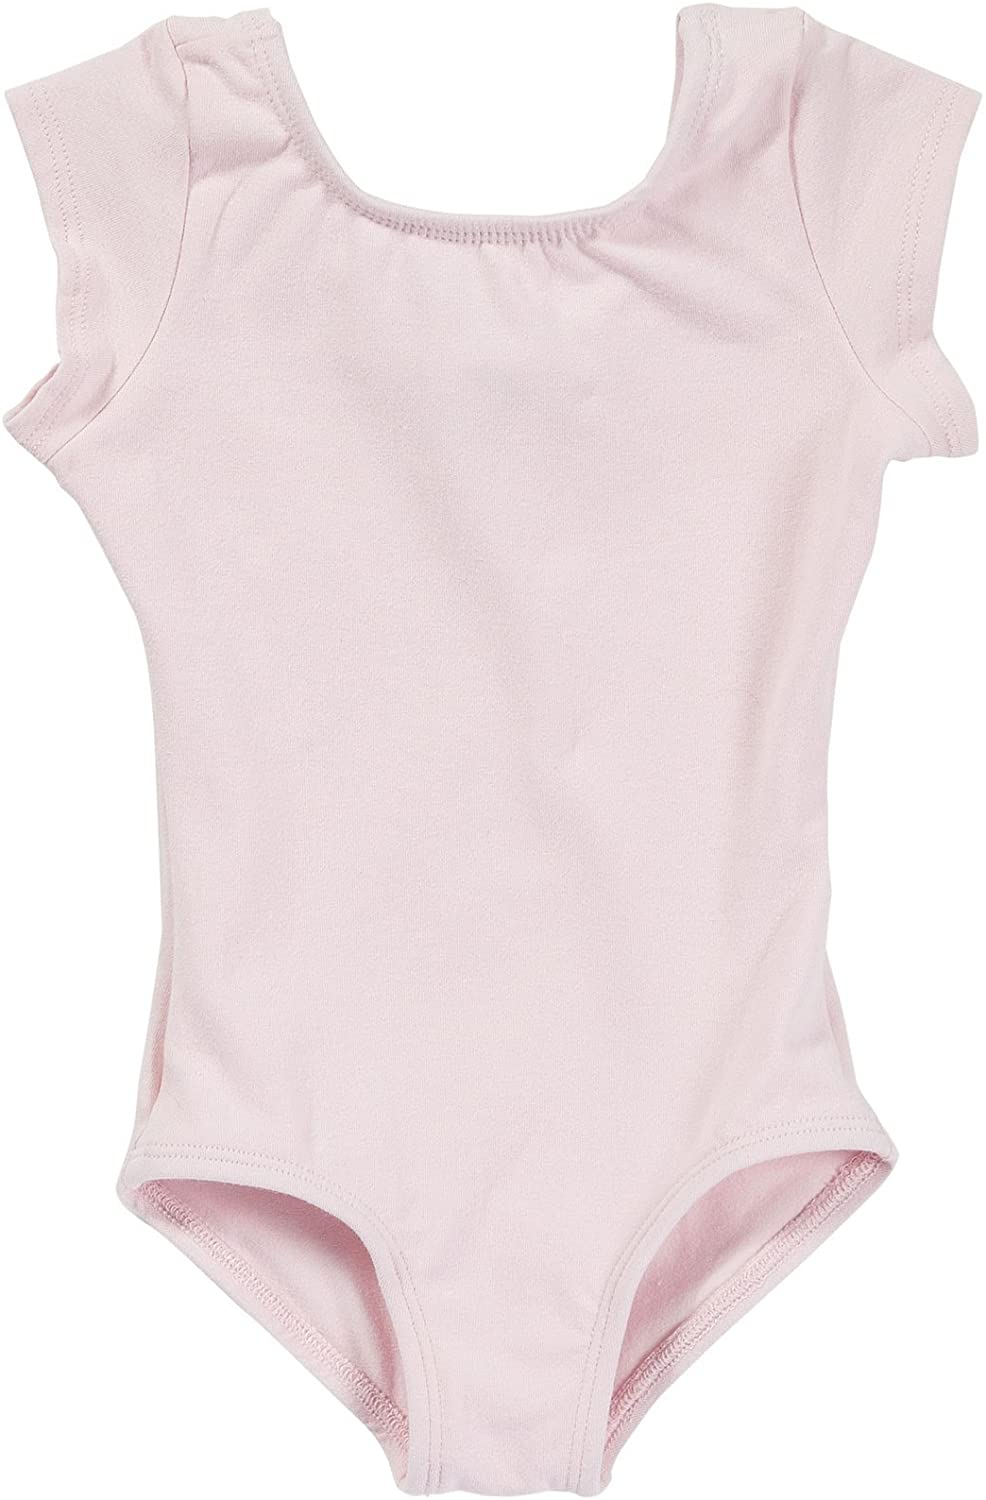 Body Wrappers Women's Bwc120